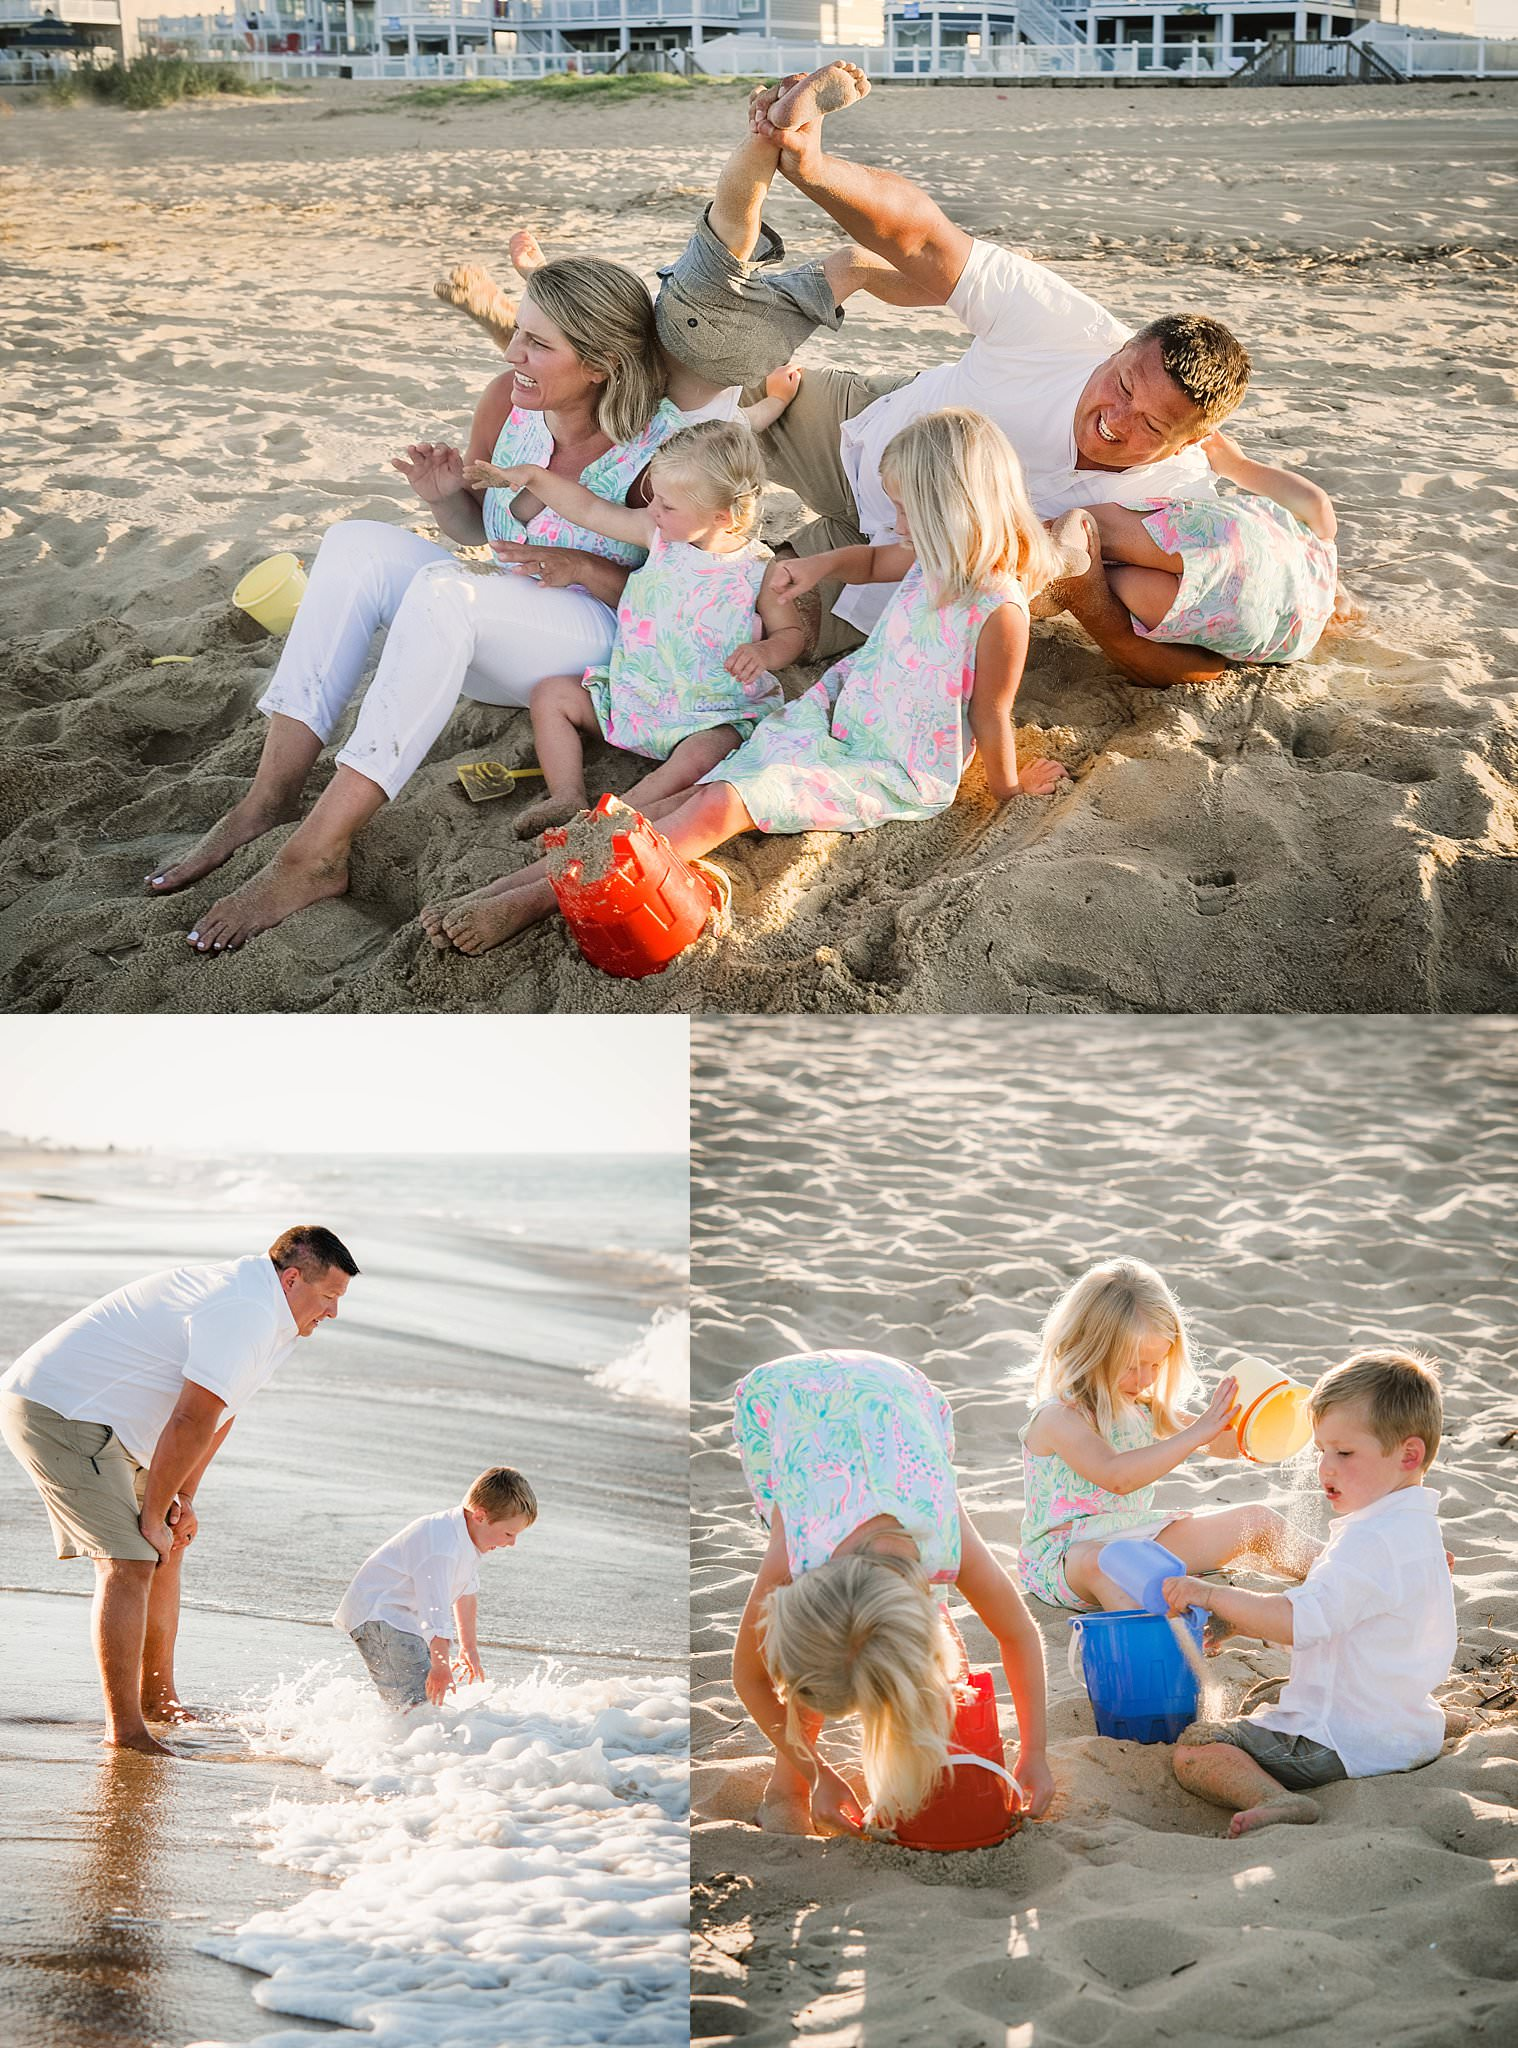 candid-family-photos-on-the-beach-sandbridge-va-melissa-bliss-photography.jpg